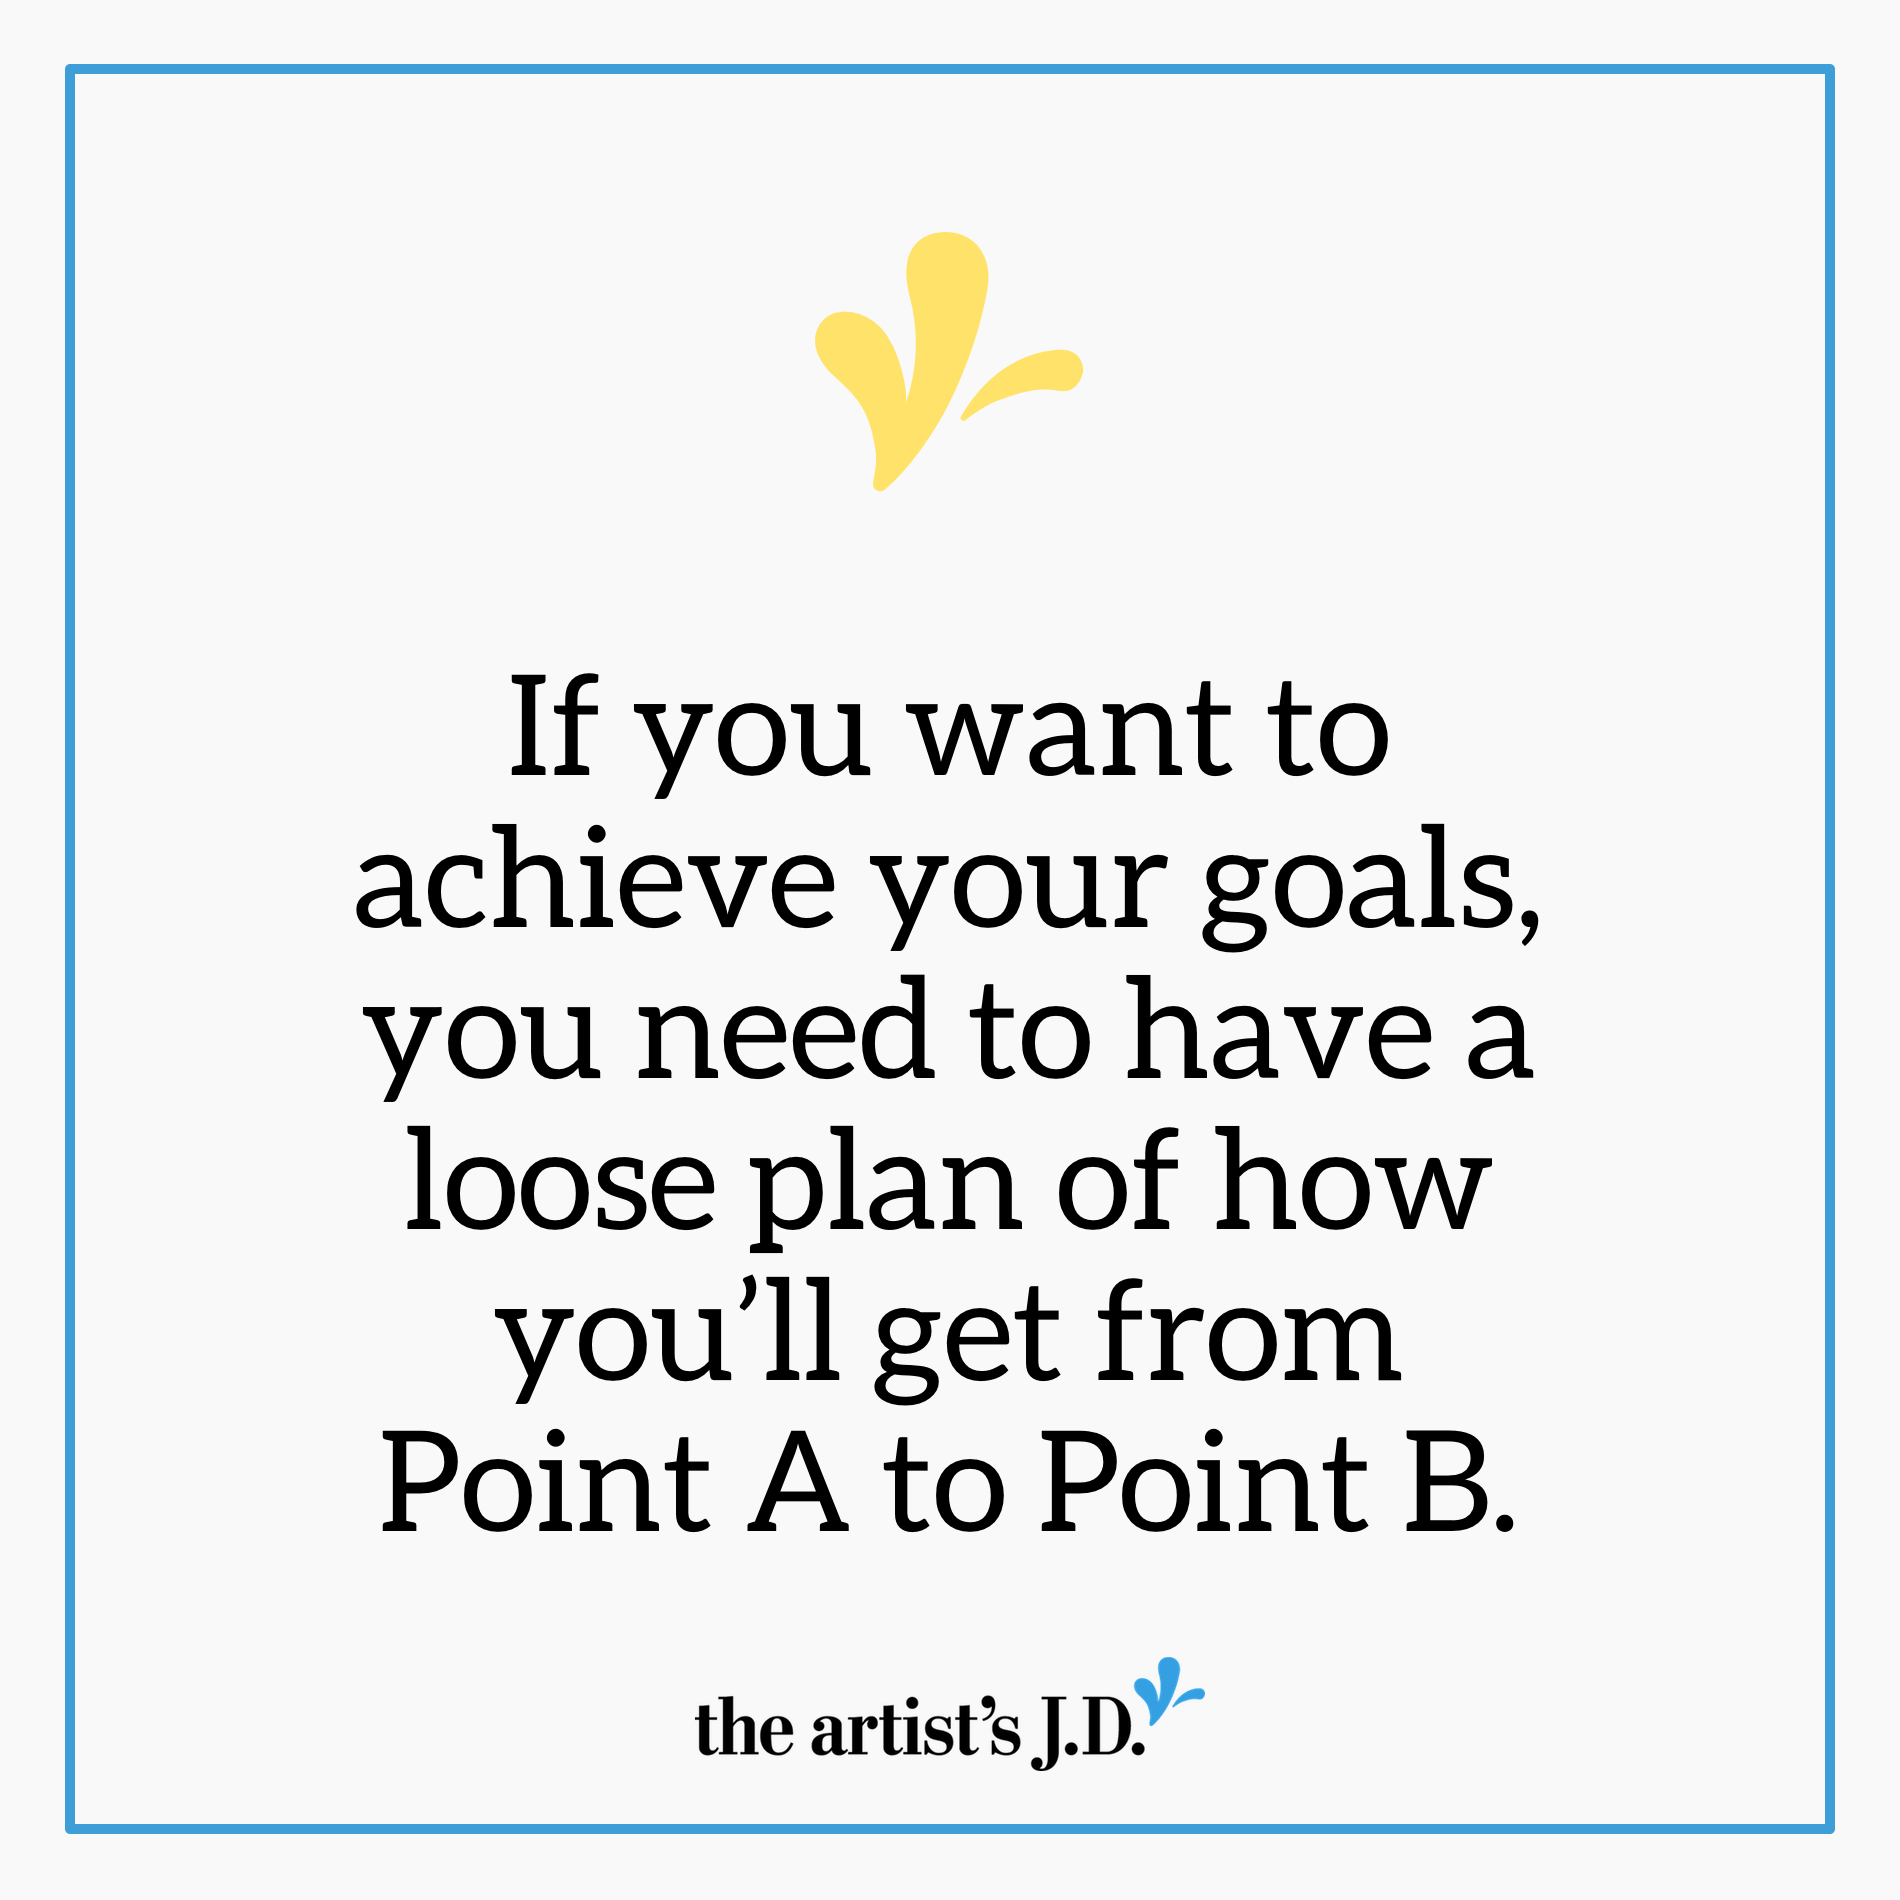 Having a bad day? Learn why you shouldn't just create a plan but plan for curve balls. So that you can have a plan to power through the bad days.